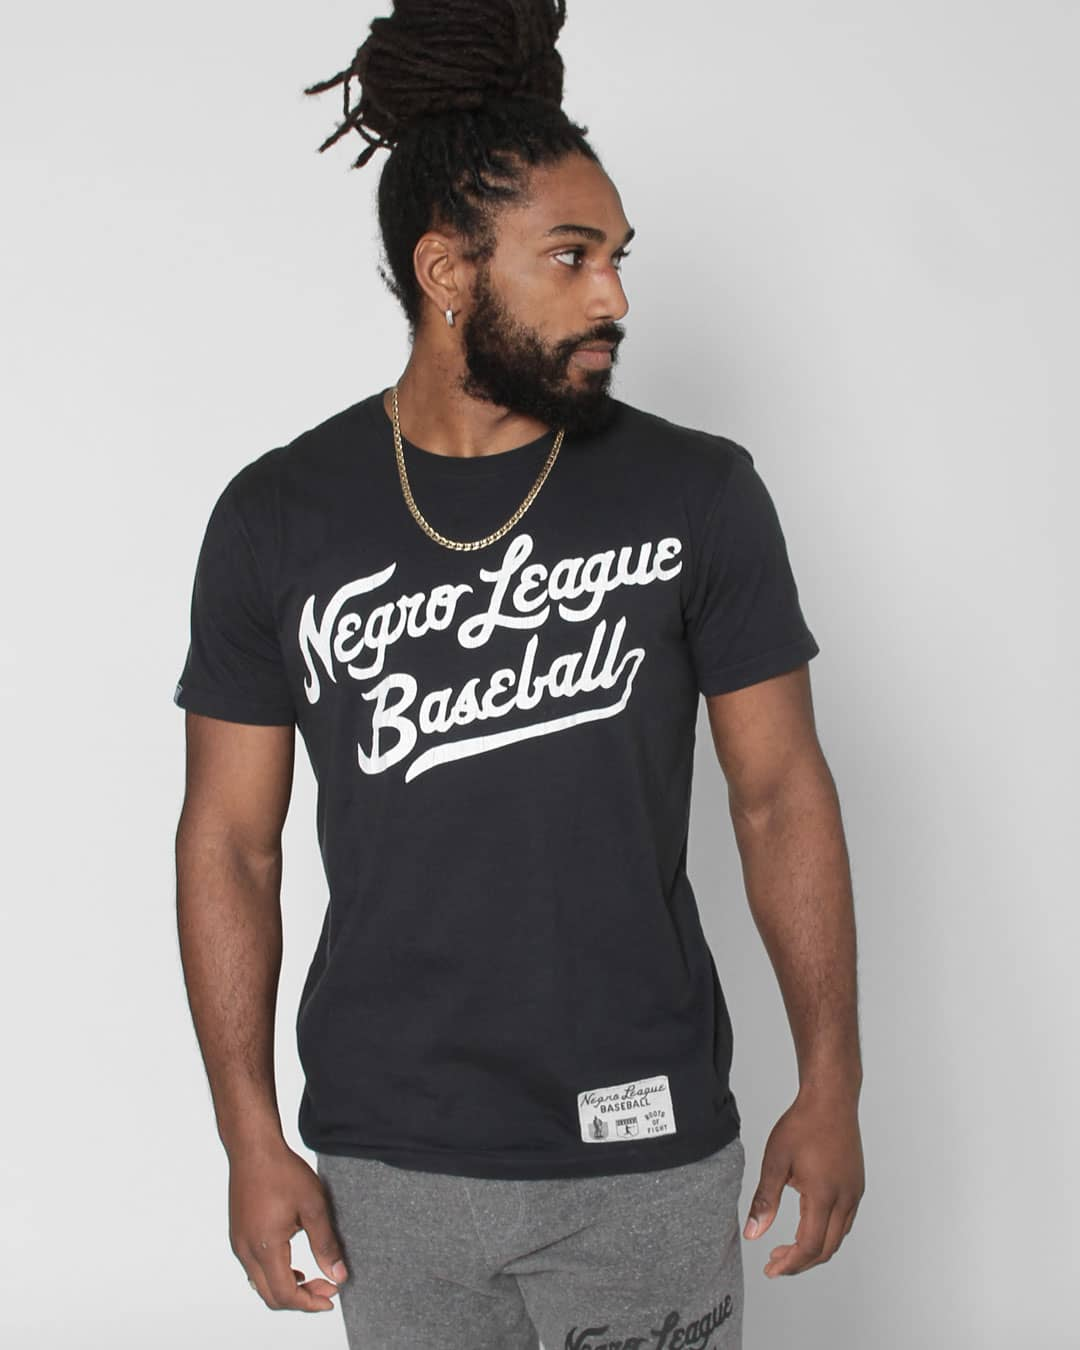 Negro League Baseball Script Tee - Roots of Inc dba Roots of Fight